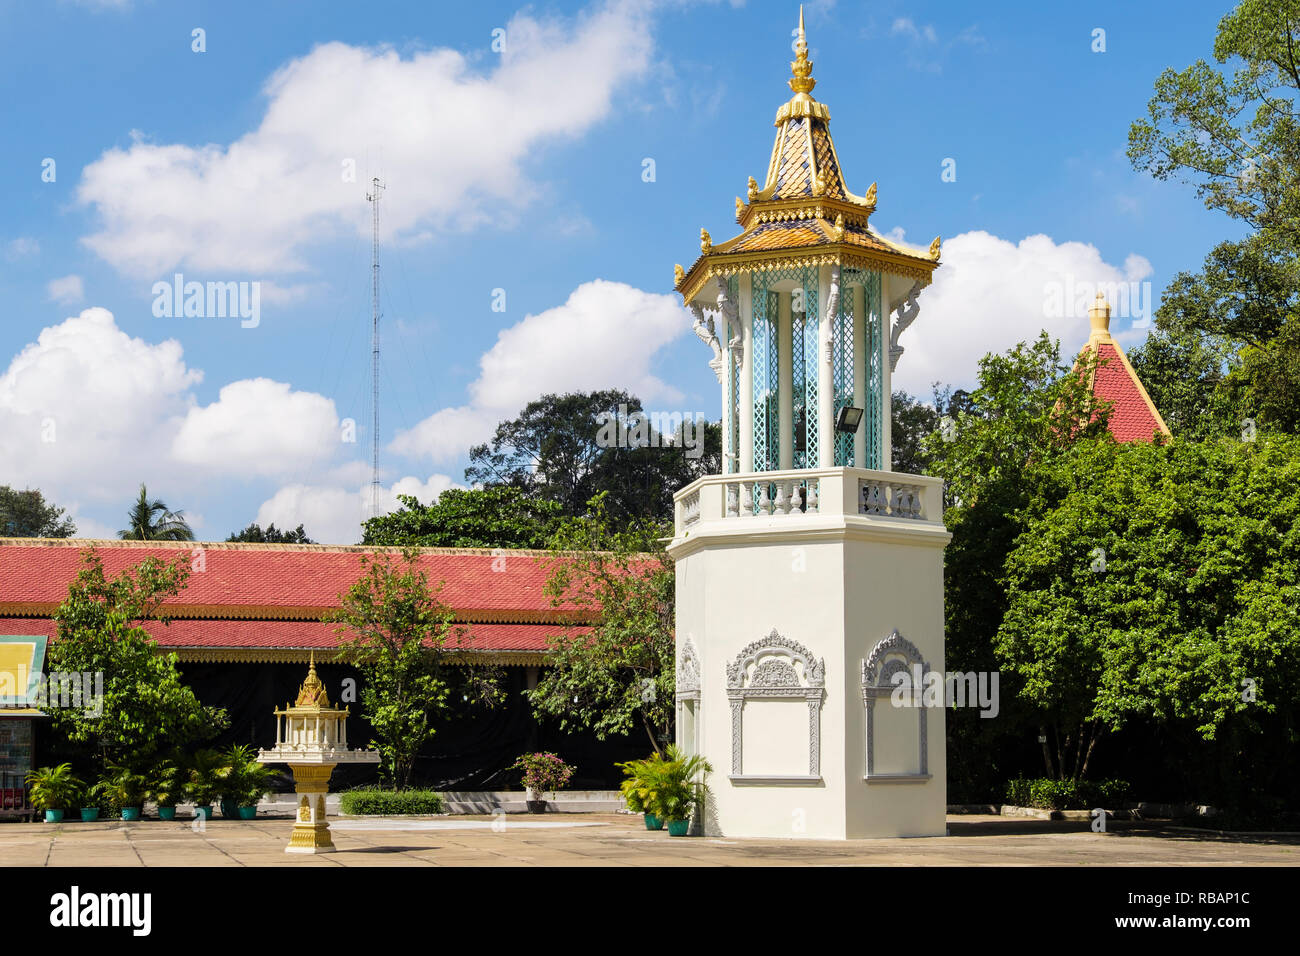 Belfry or bell tower in the Silver Pagoda compound within the Royal Palace complex. Phnom Penh, Cambodia, southeast Asia Stock Photo